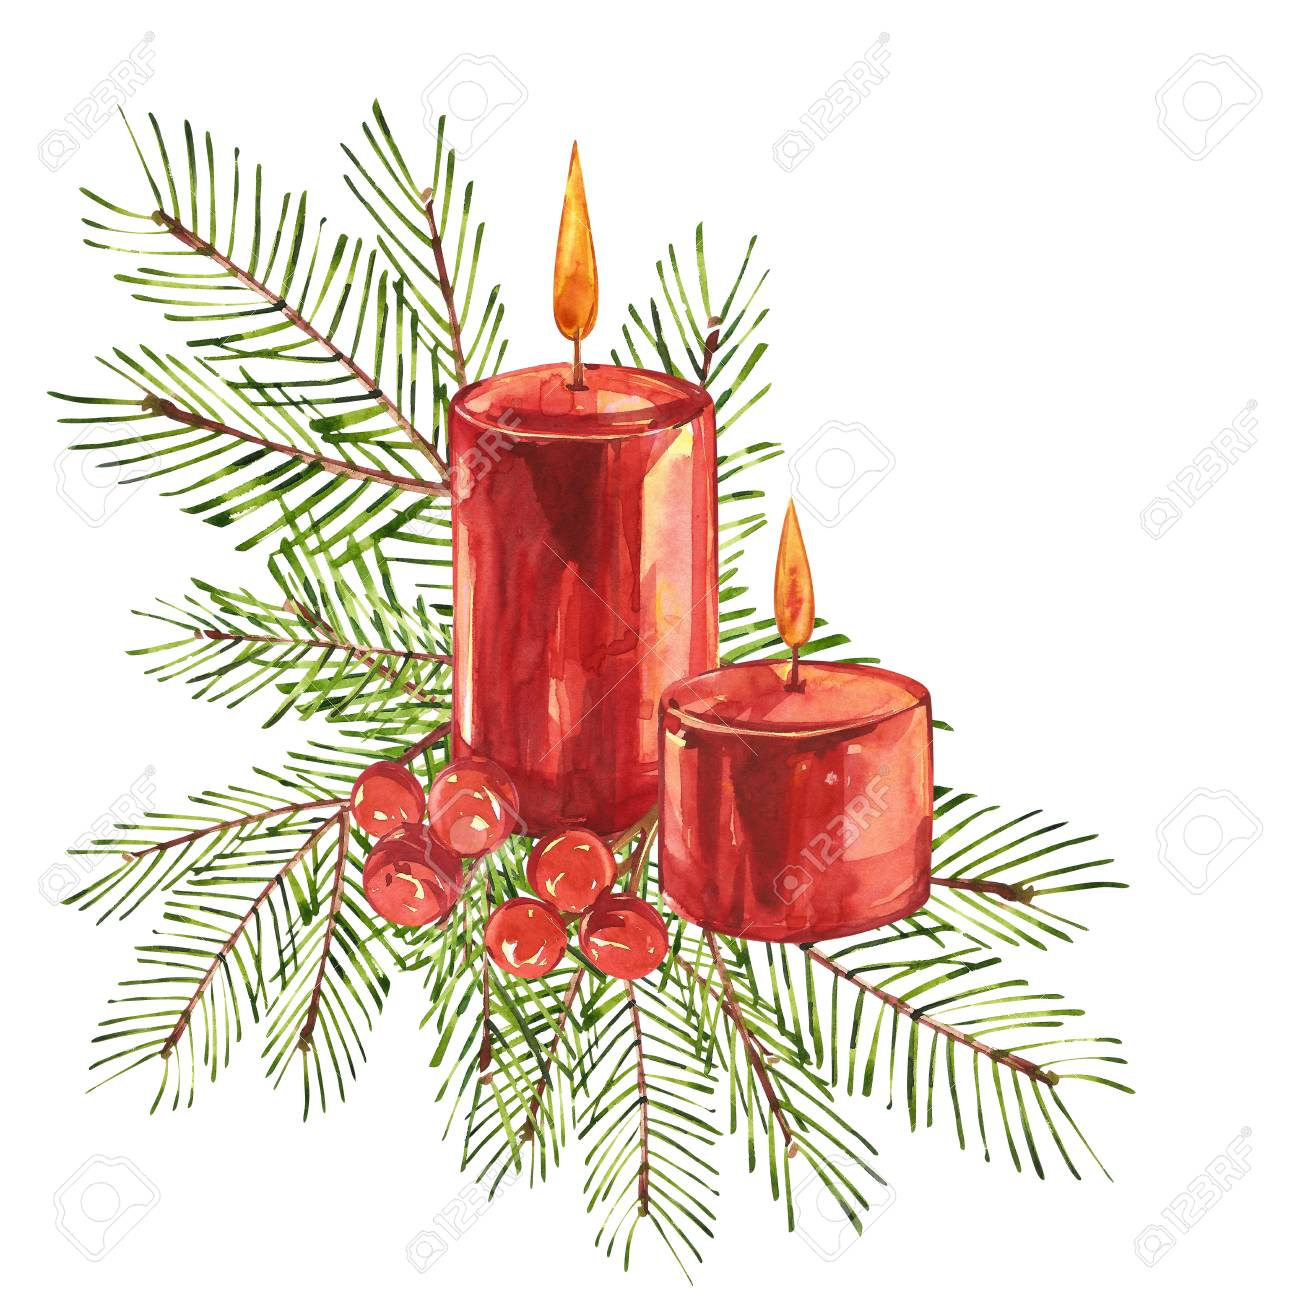 illustration vintage christmas illustrations christmas candle tree and decorations watercolor design isolated on white background